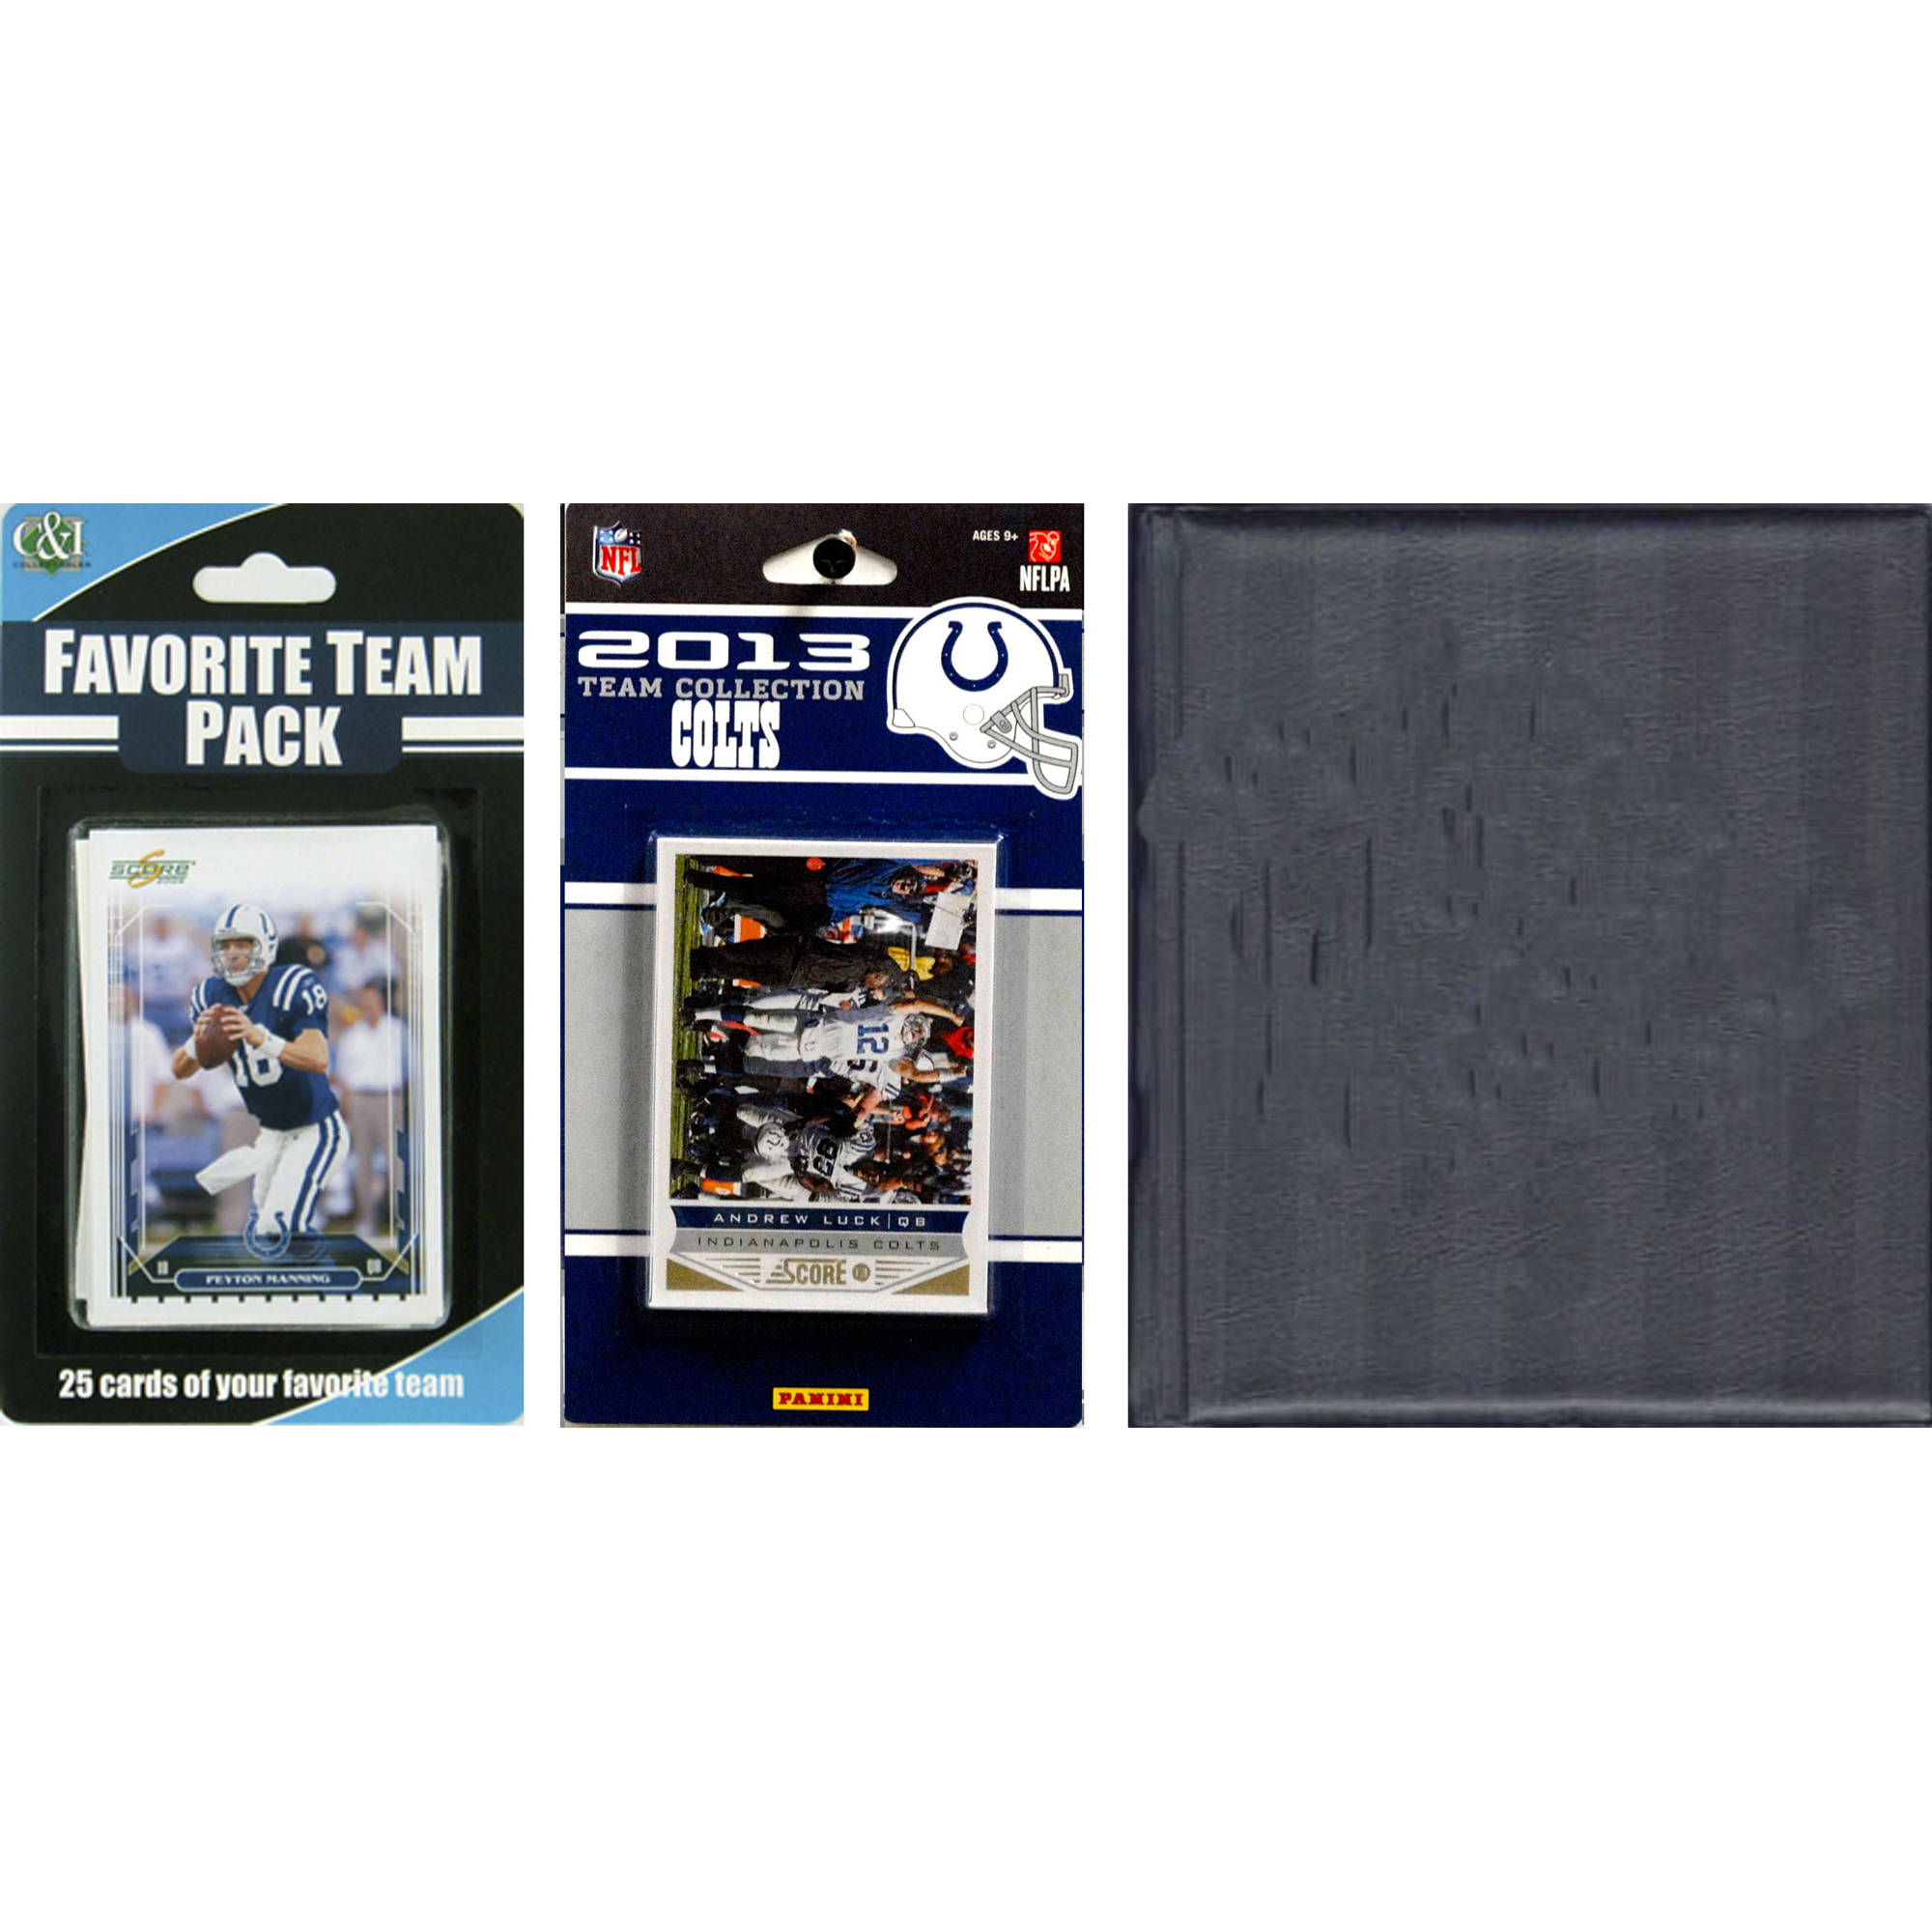 C&I Collectables NFL Indianapolis Colts Licensed 2013 Score Team Set and Favorite Player Trading Card Pack Plus Storage Album